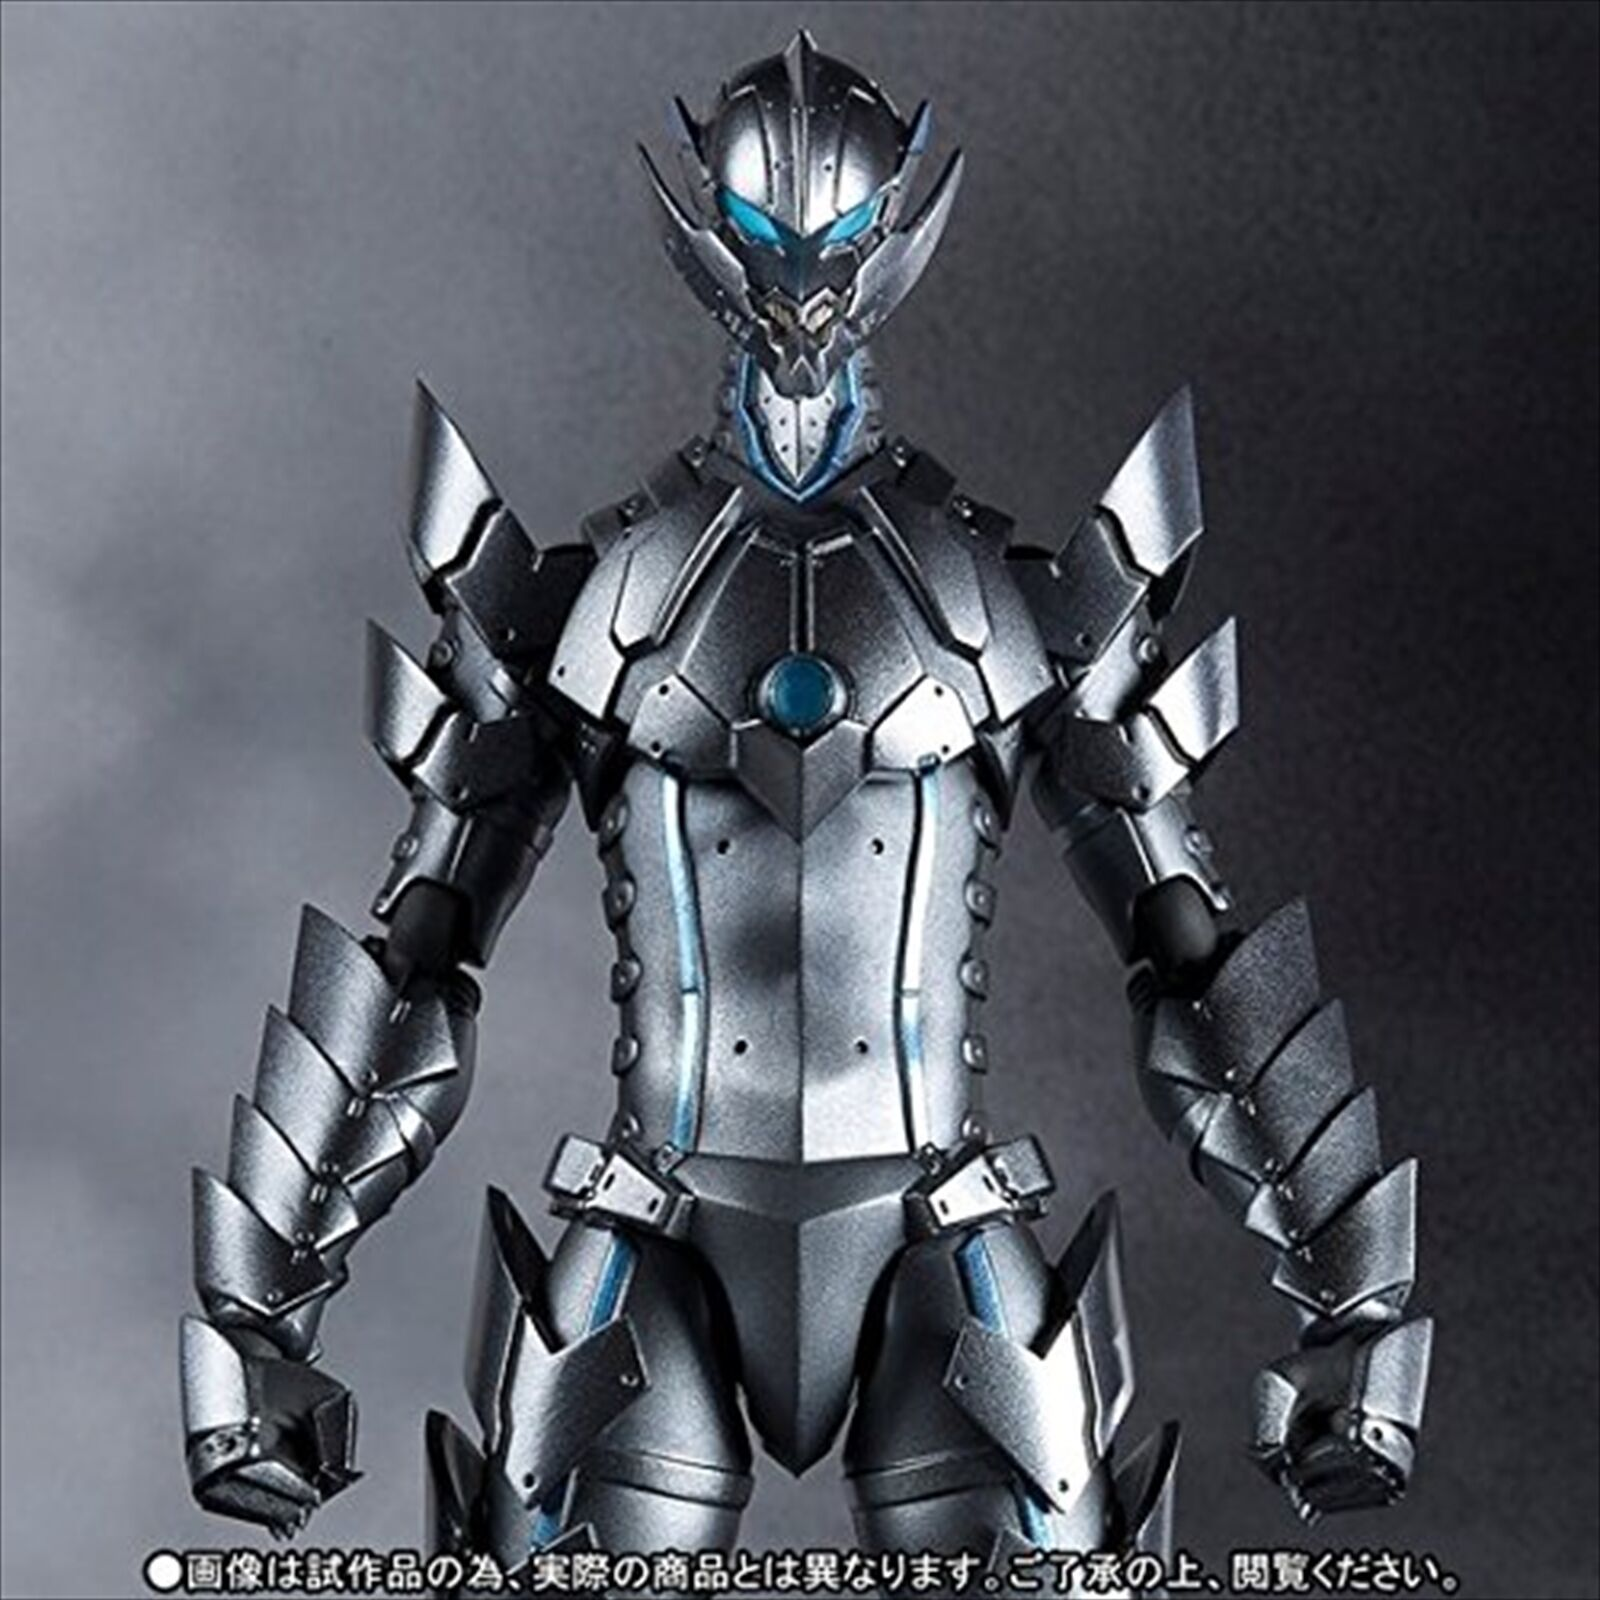 Premium Bandai ULTRA-ACT x S.H.Figuarts ULTRAMAN BEMULAR 180mm Action Figure